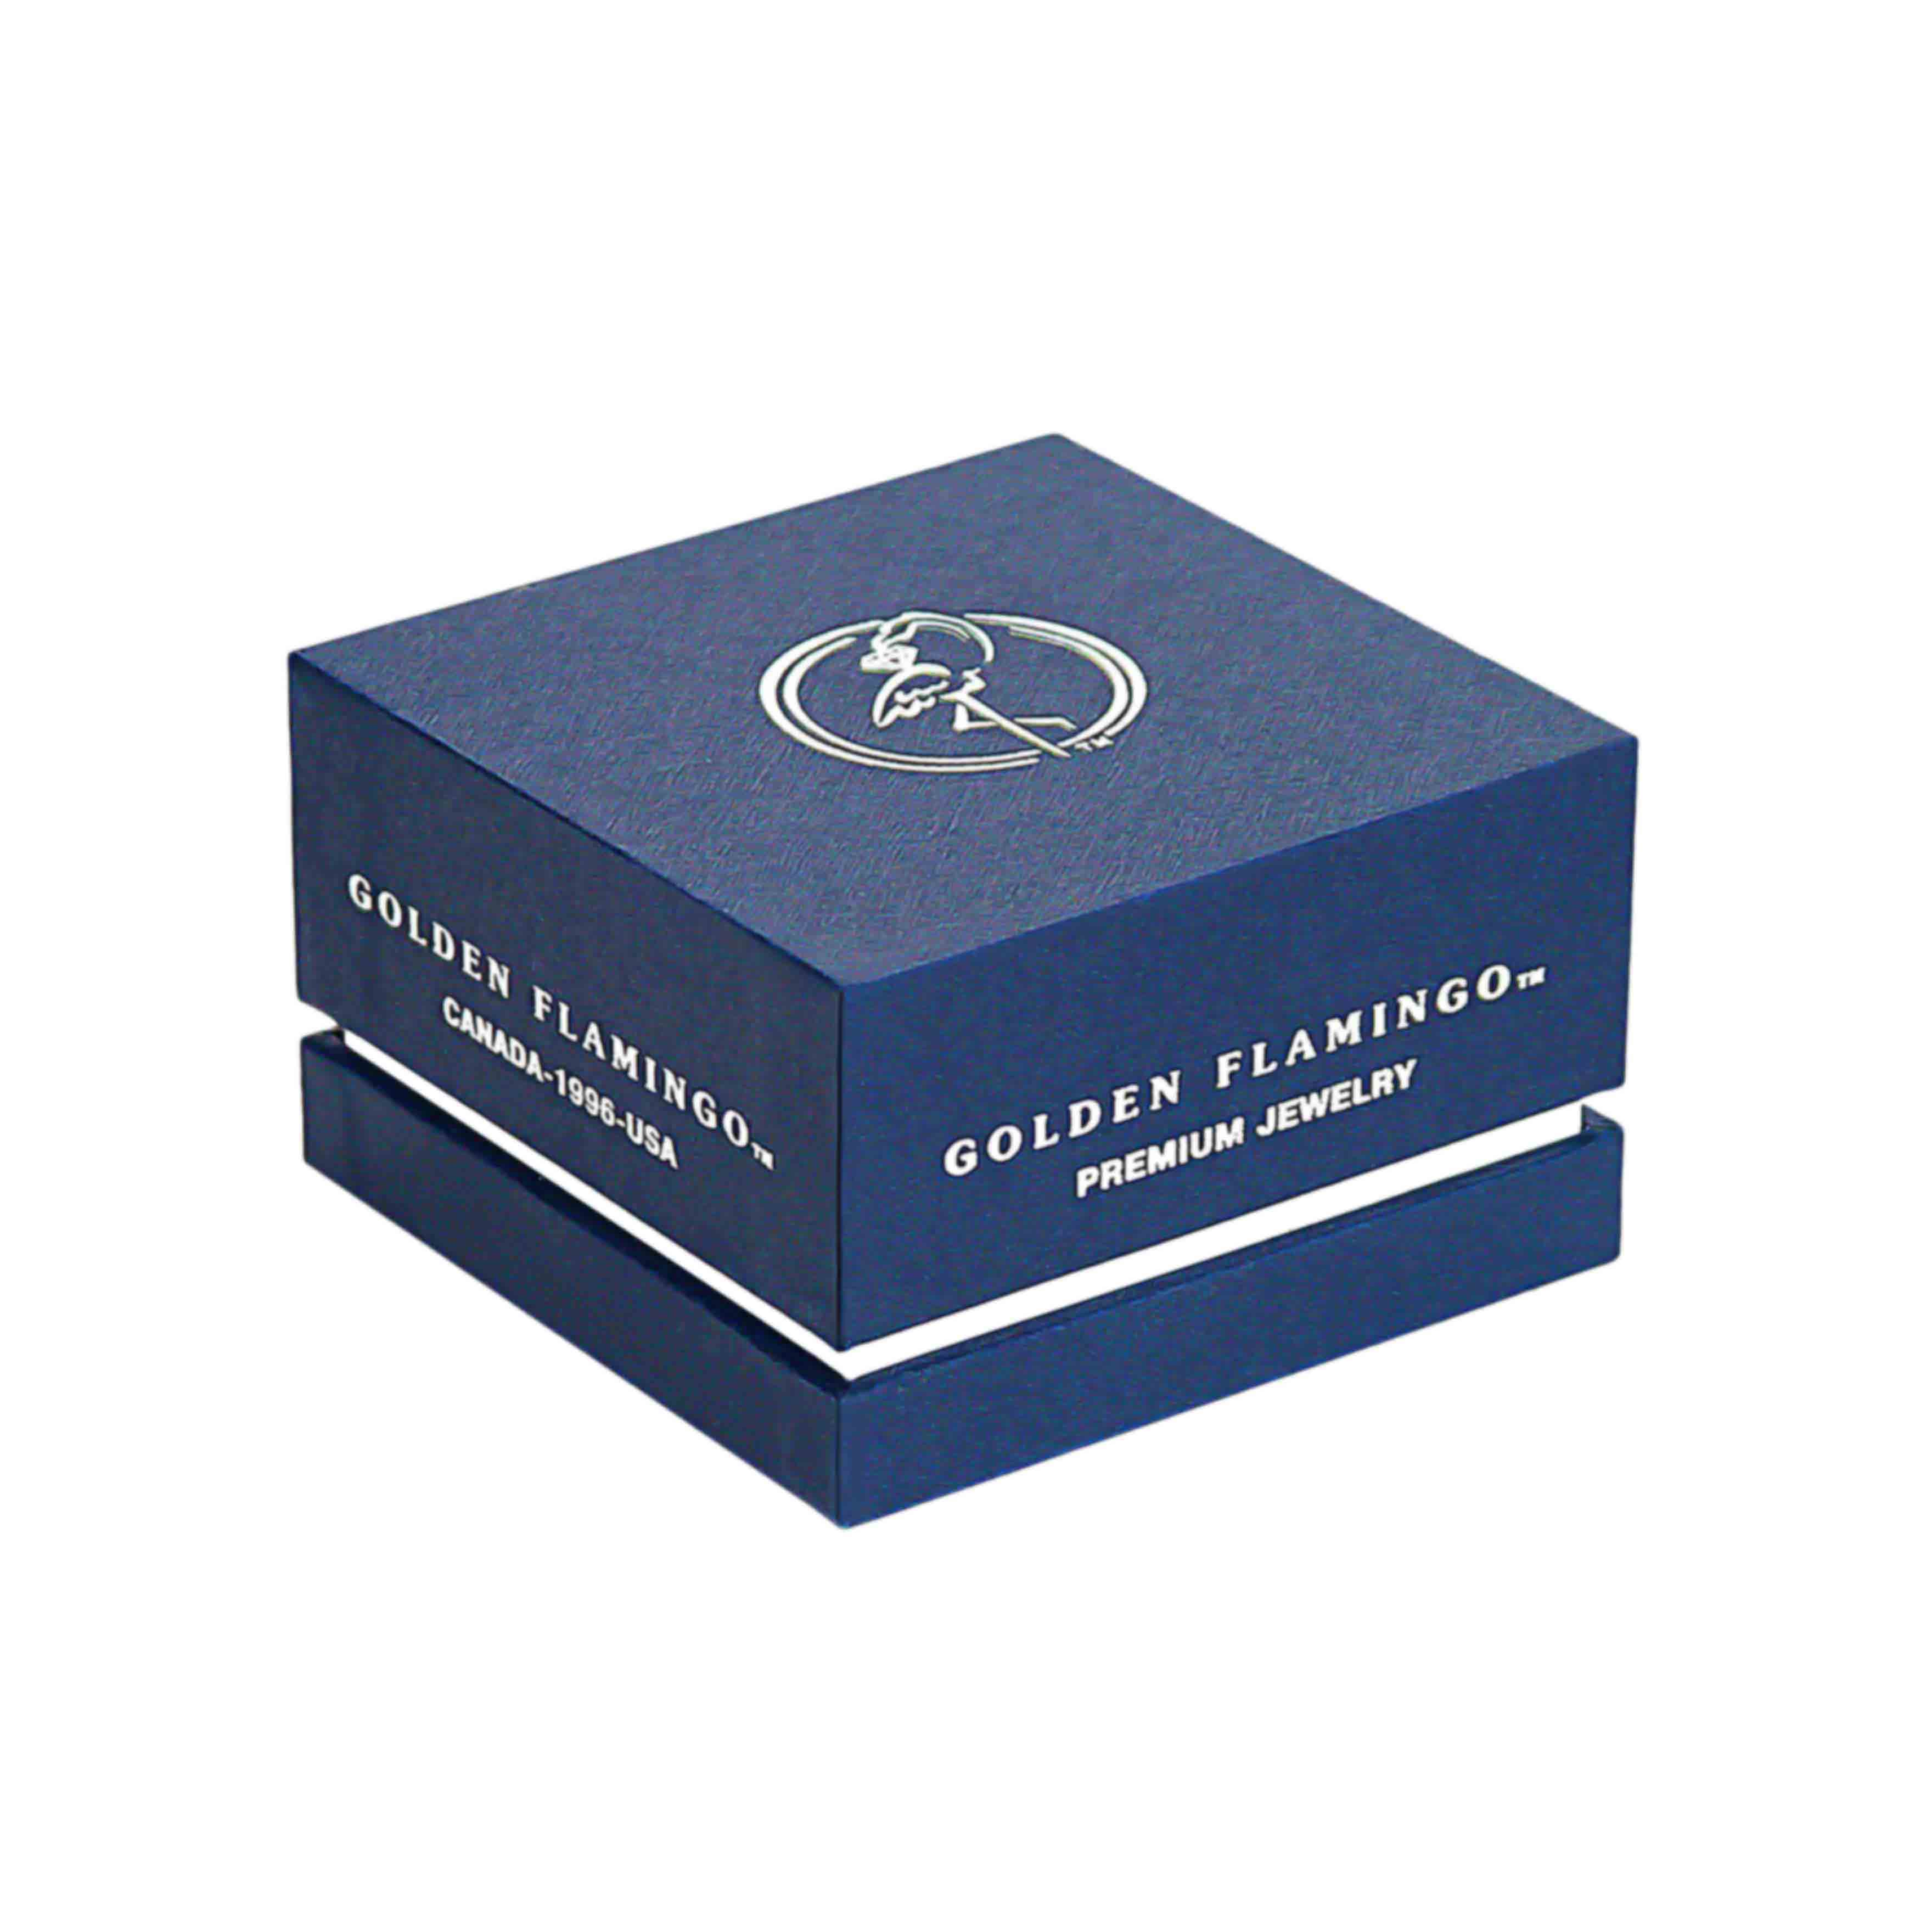 A free boutique-quality gift box for gold ring by the Golden Flamingo brand